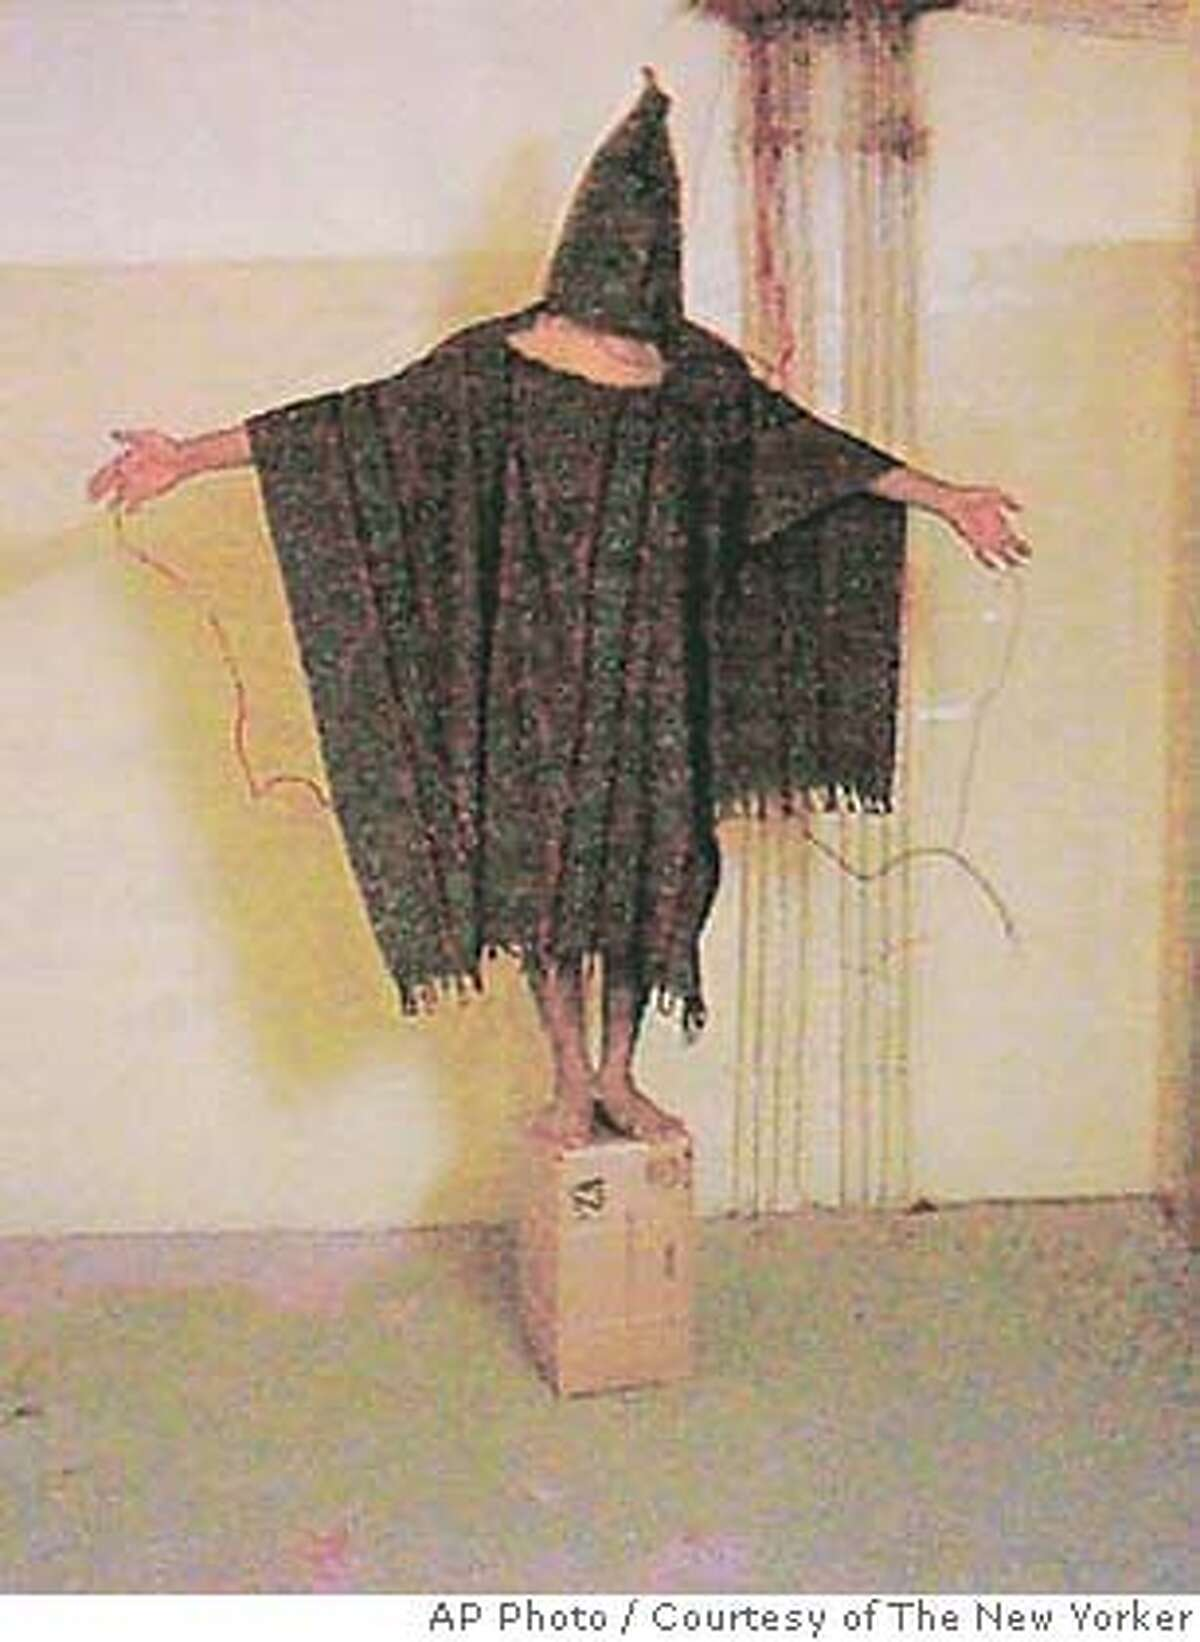 � ** FILE ** In this undated file photo released by the New Yorker, a hooded and wired Iraqi prisoner is seen at the Abu Ghraib prison near Baghdad, Iraq. The New York Times is investigating questions raised about the identity of a man who said in a Page 1 profile that he is the Abu Ghraib prisoner whose hooded image became an icon of abuse by American captors. (AP Photo/Courtesy of The New Yorker, File, HO)Ran on: 03-19-2006 Prisoner abuse at Abu Ghraib prison near Baghdad is a symptom of U.S. moral malaise. NO SALES, UNDATED HANDOUT FILE PHOTO, MANDATORY CREDIT